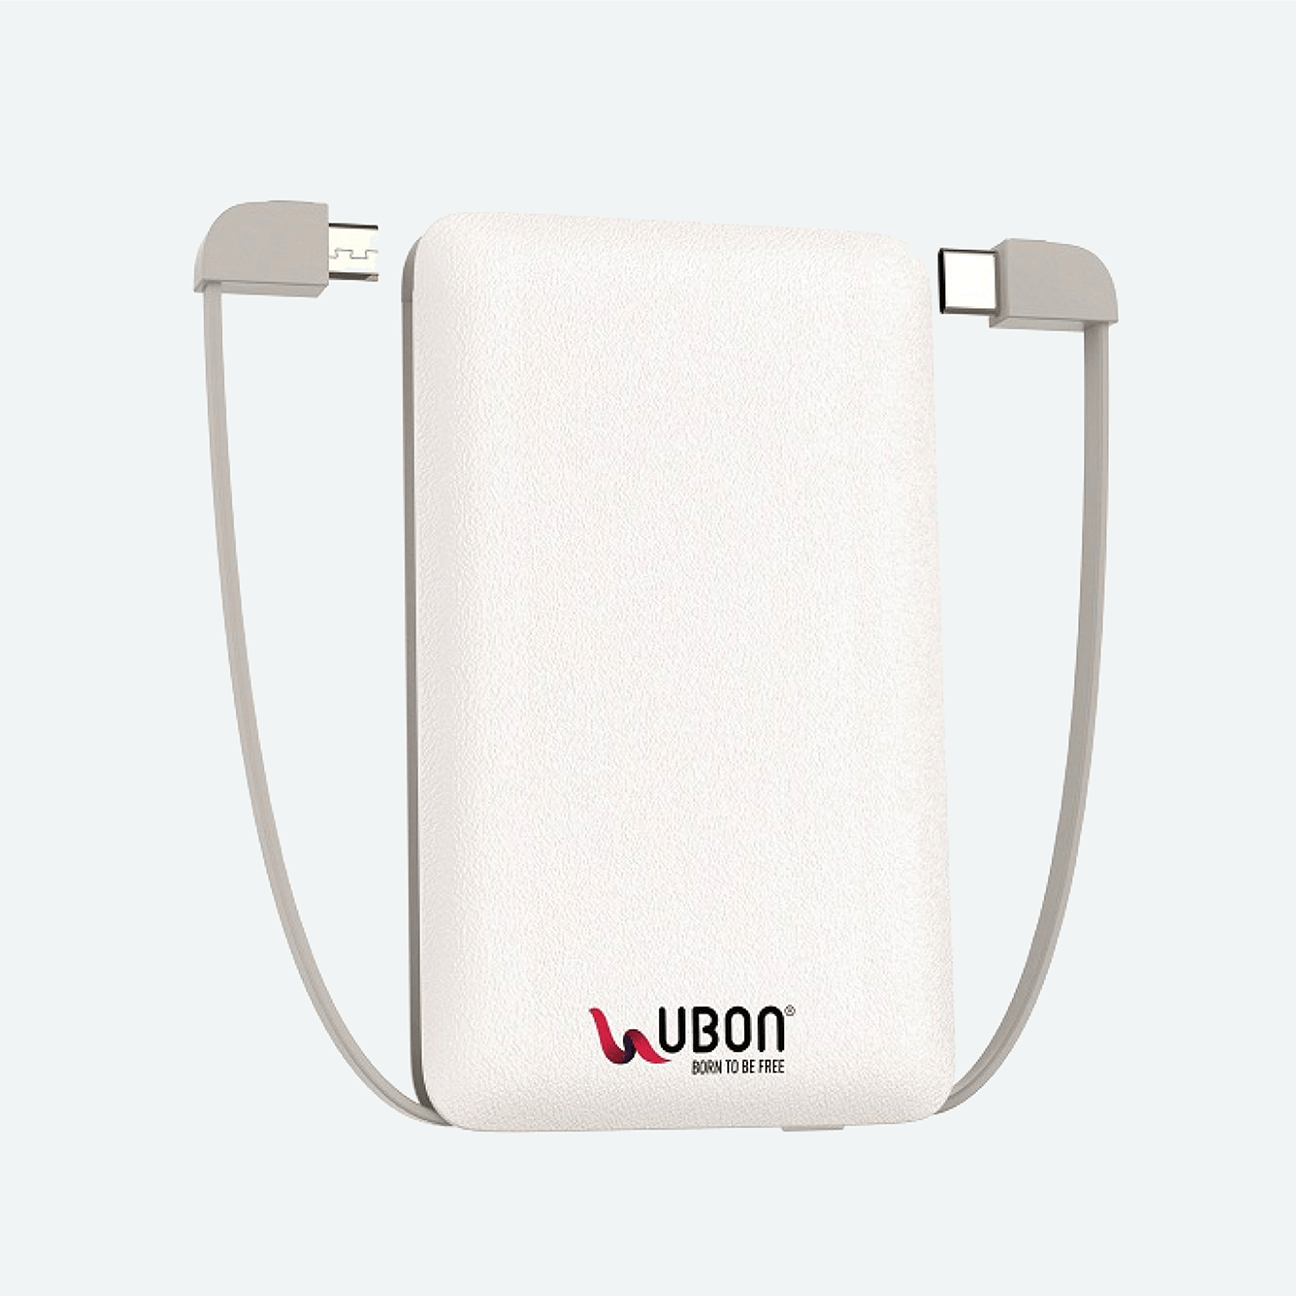 Ubon PB-X14 5000mAh Power Bank With Dual USB Port